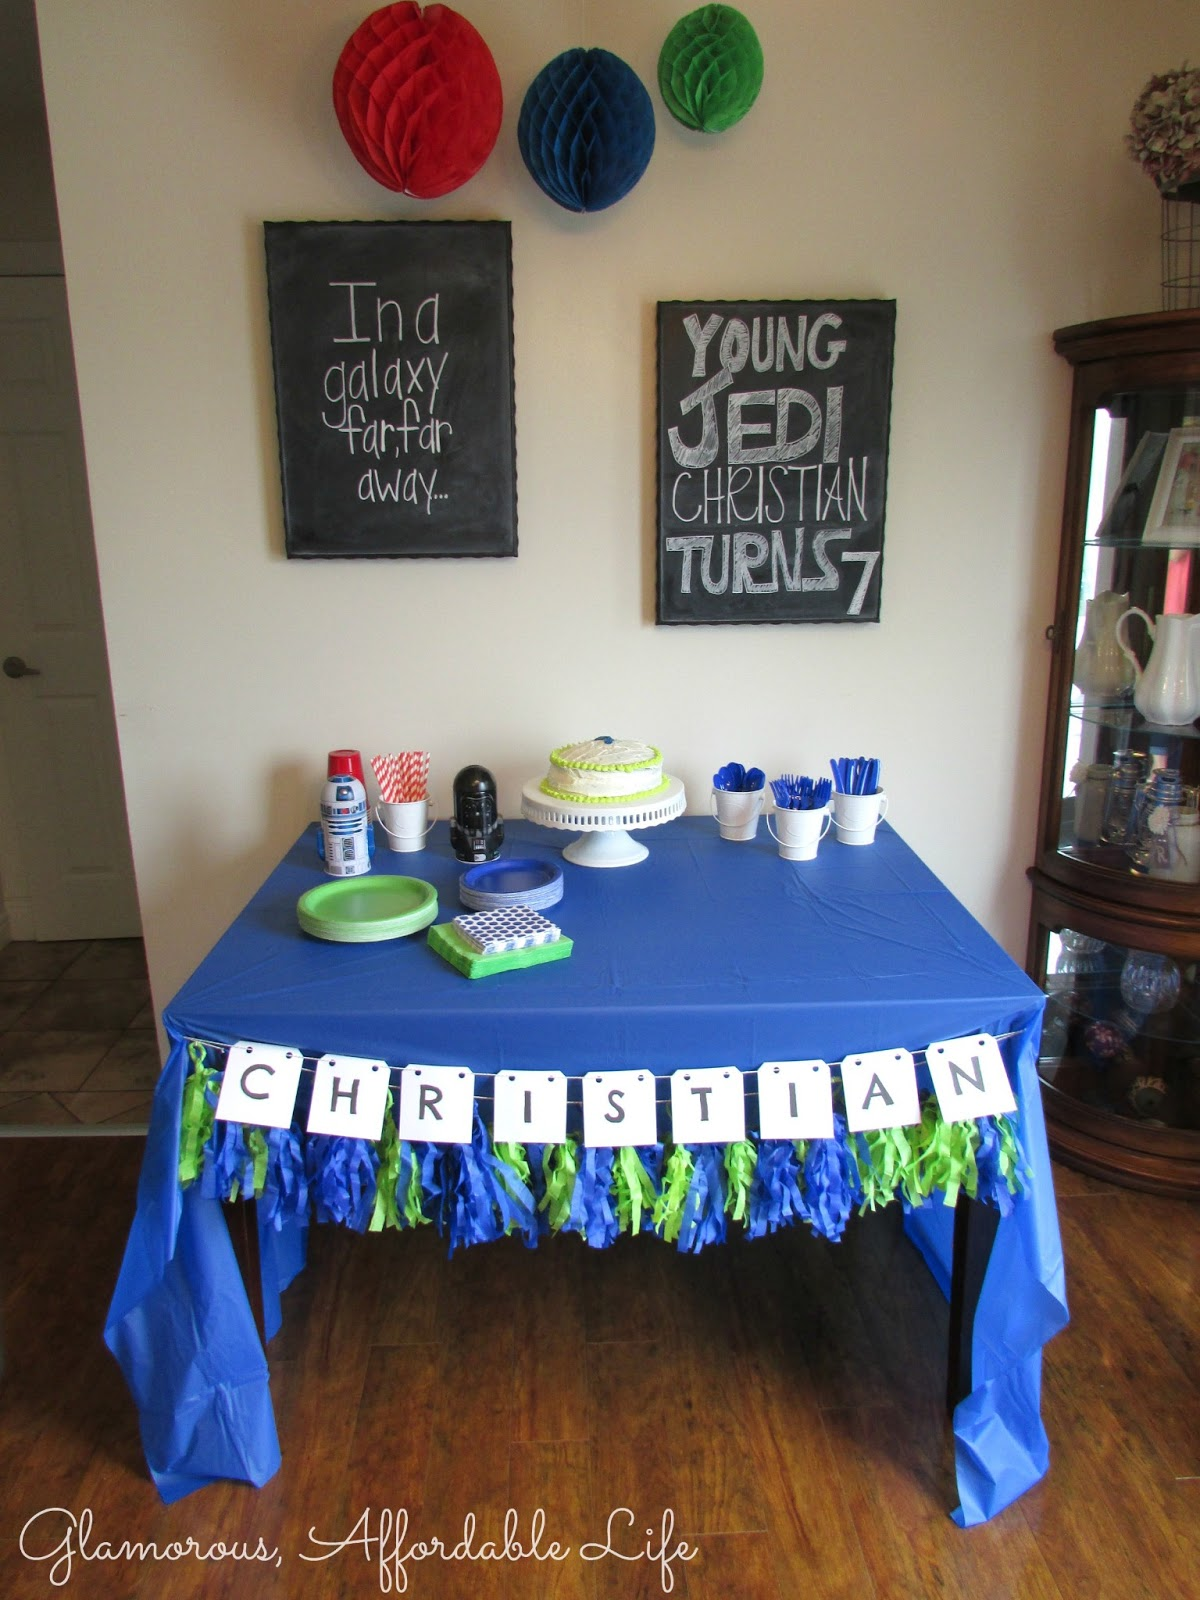 Glamorous, Affordable Life: { Star Wars 7th Birthday Party }